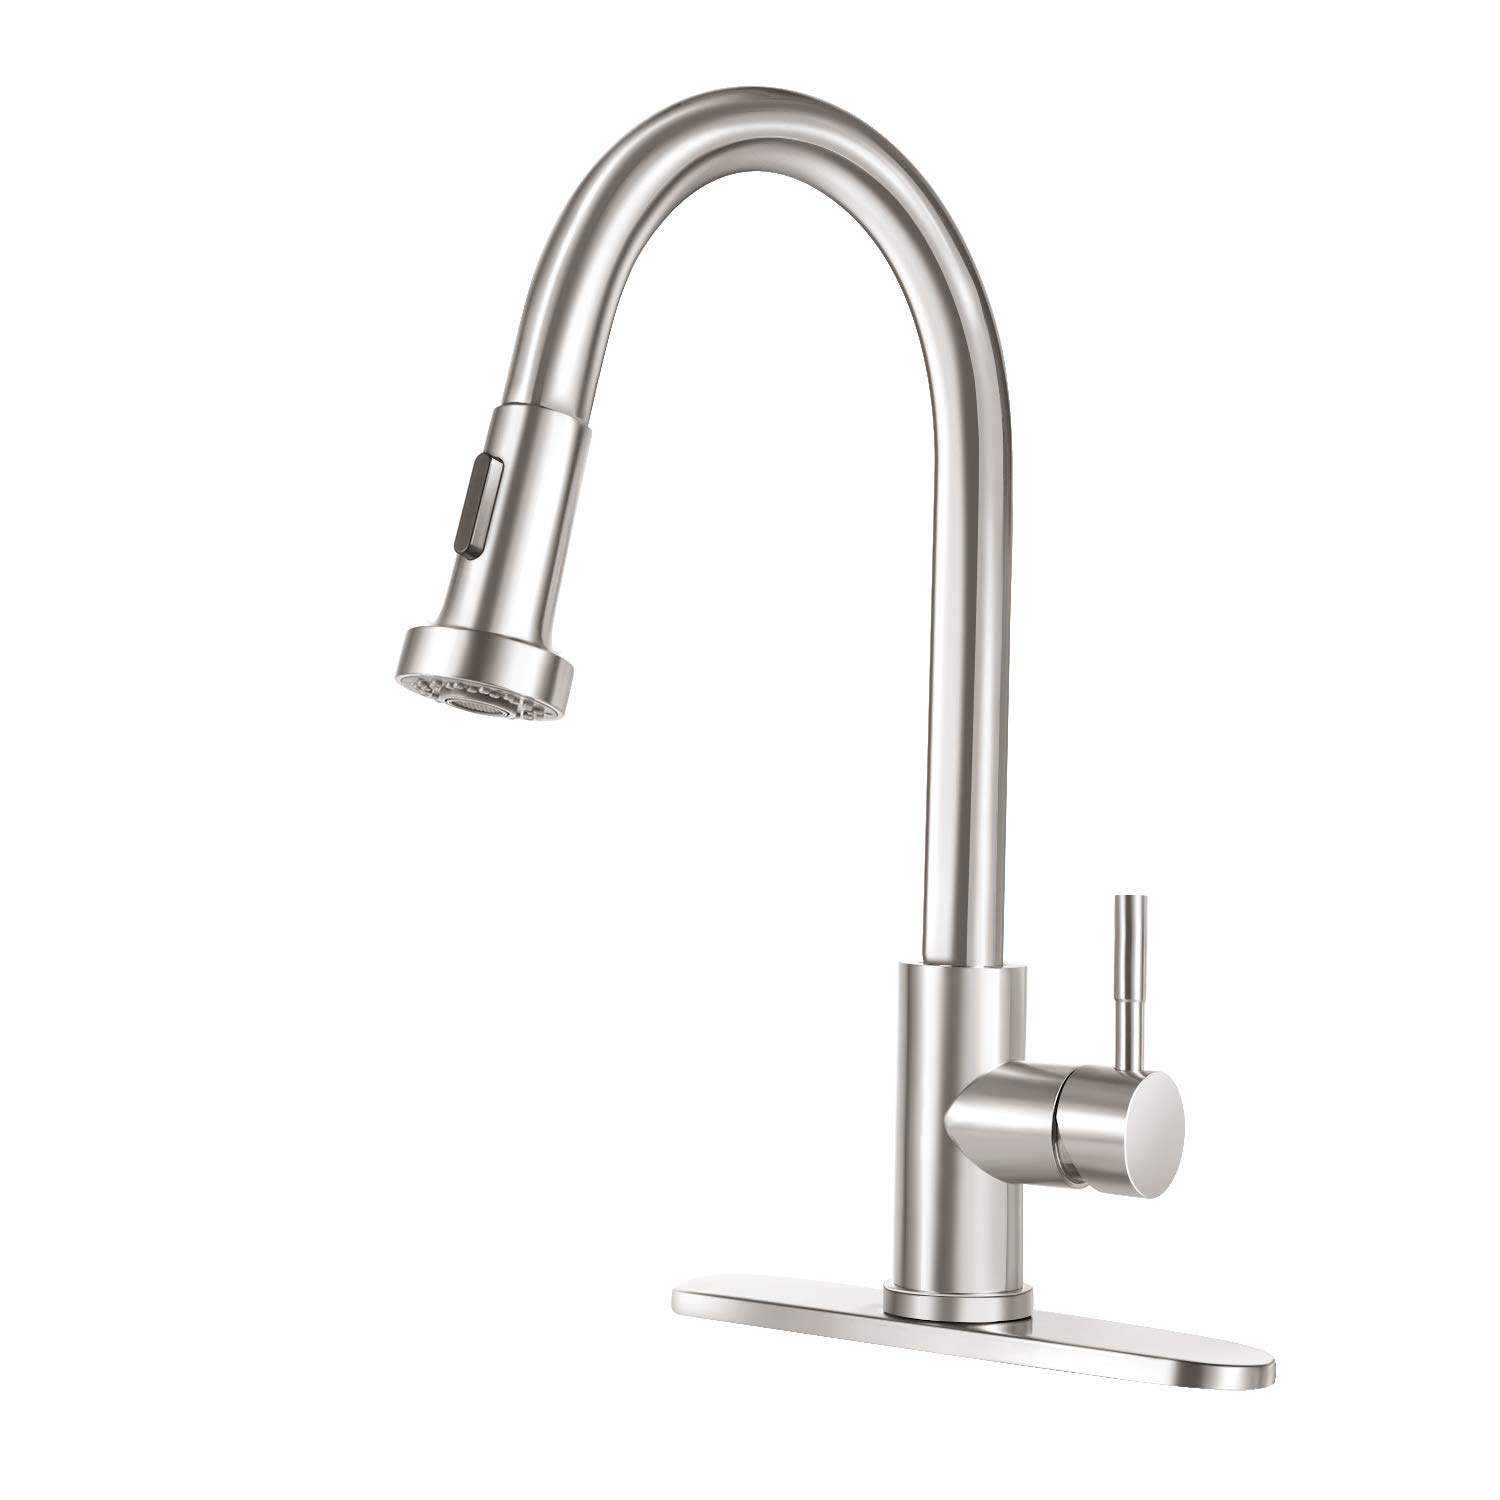 Stainless Kitchen Faucet with Pull Down Sprayer COOLWEST Single Handle Commercial Sink Faucets 16 Inch Dual Function Pull Out Kitchen Faucet with Deck Plate